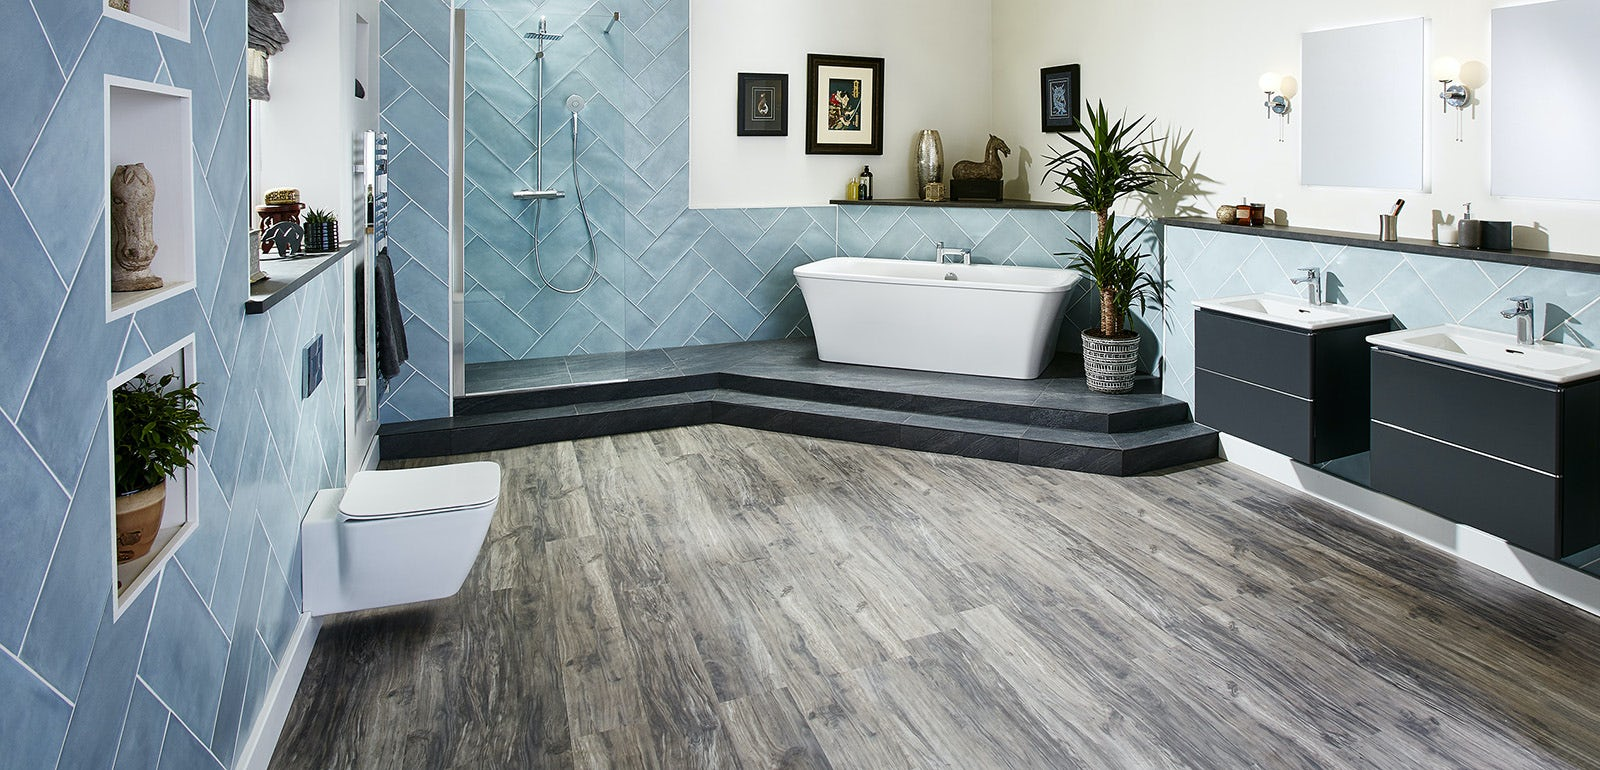 Introducing the Strada II collection by Ideal Standard